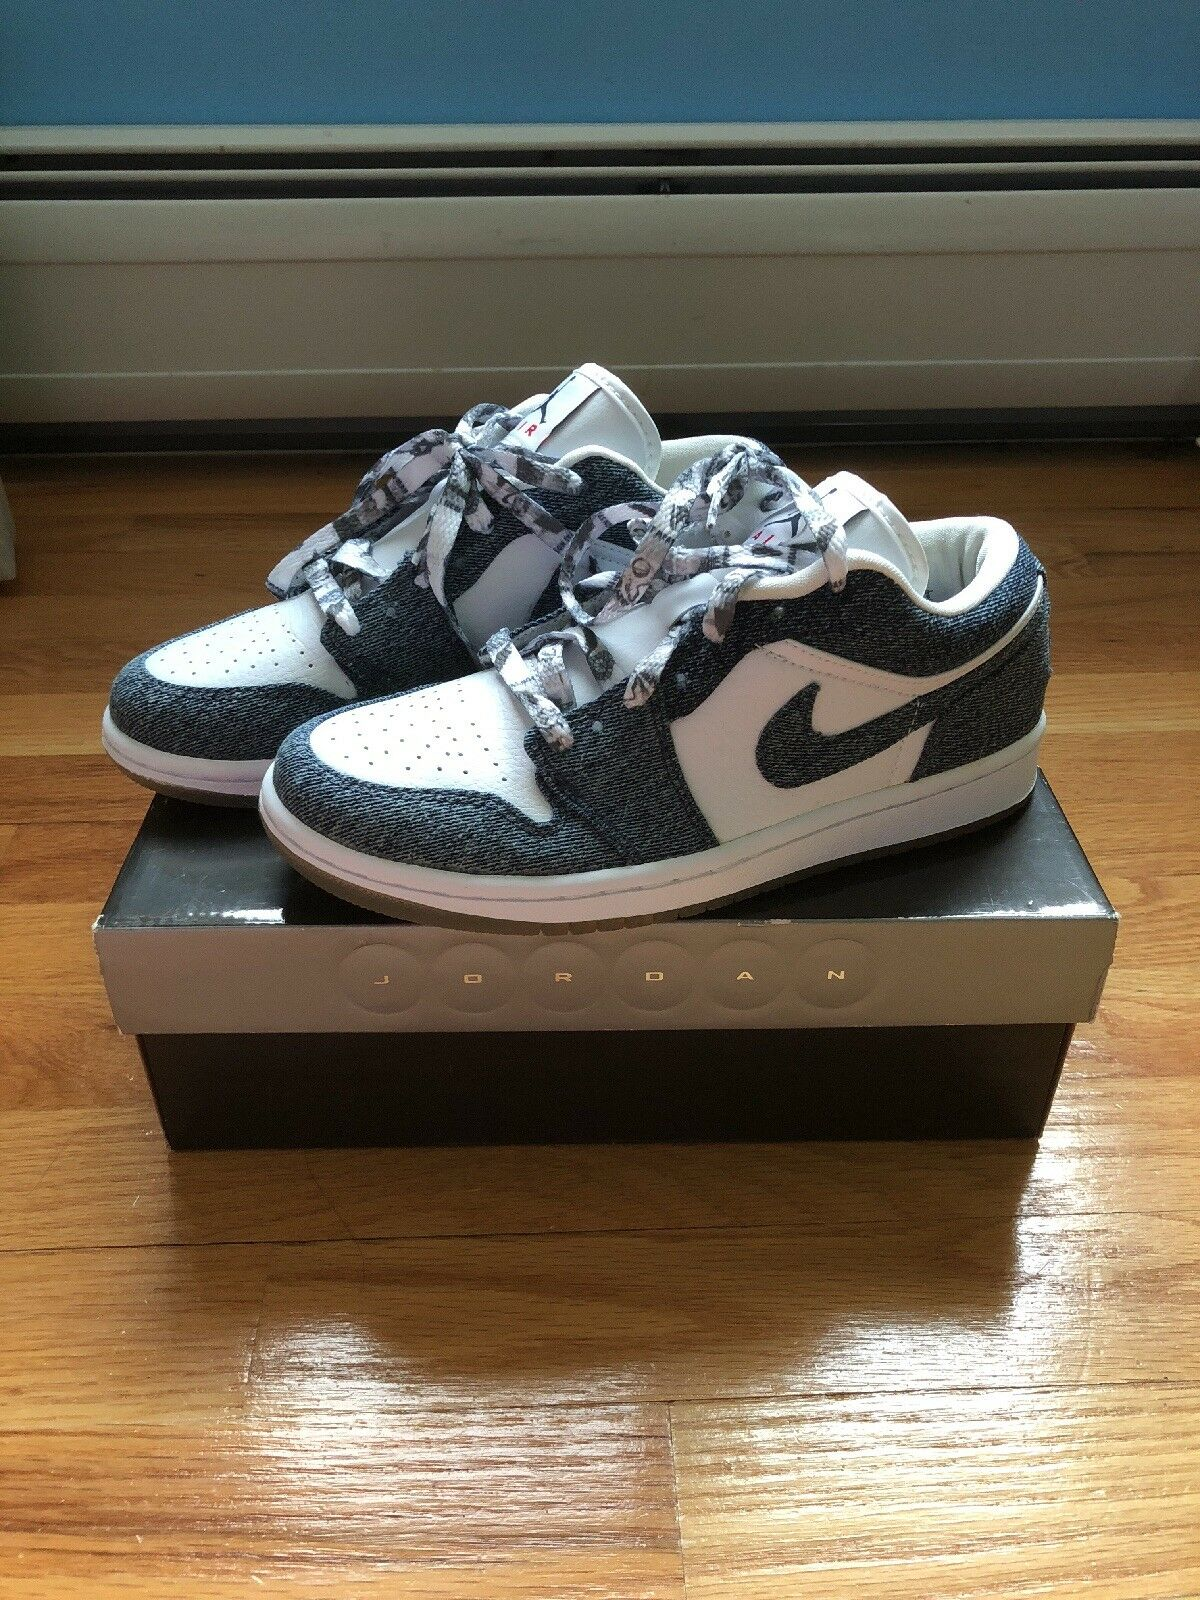 Nike Air Sneakers, Jordan Denim Retro Low Sneakers, Air women's size 6.5 e6452e